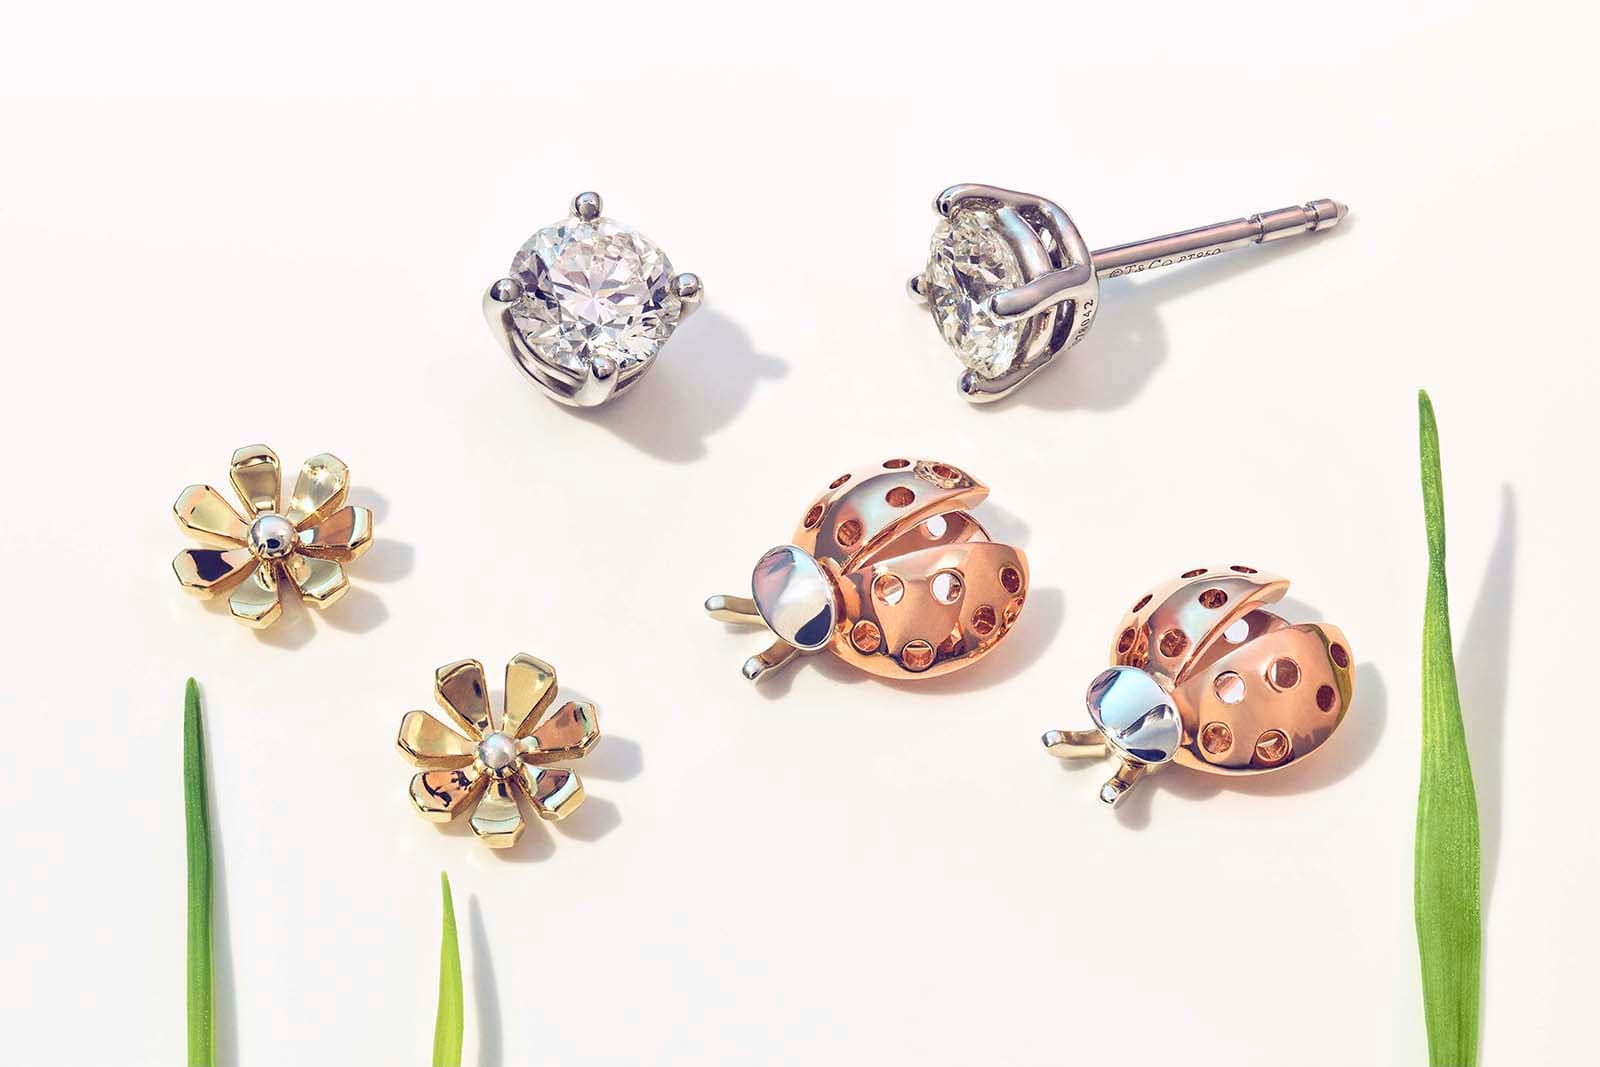 Tiffany&Co. 'Return to Tiffany Love Bugs' collection earrings with diamond earrings in yellow, rose and white gold and silver